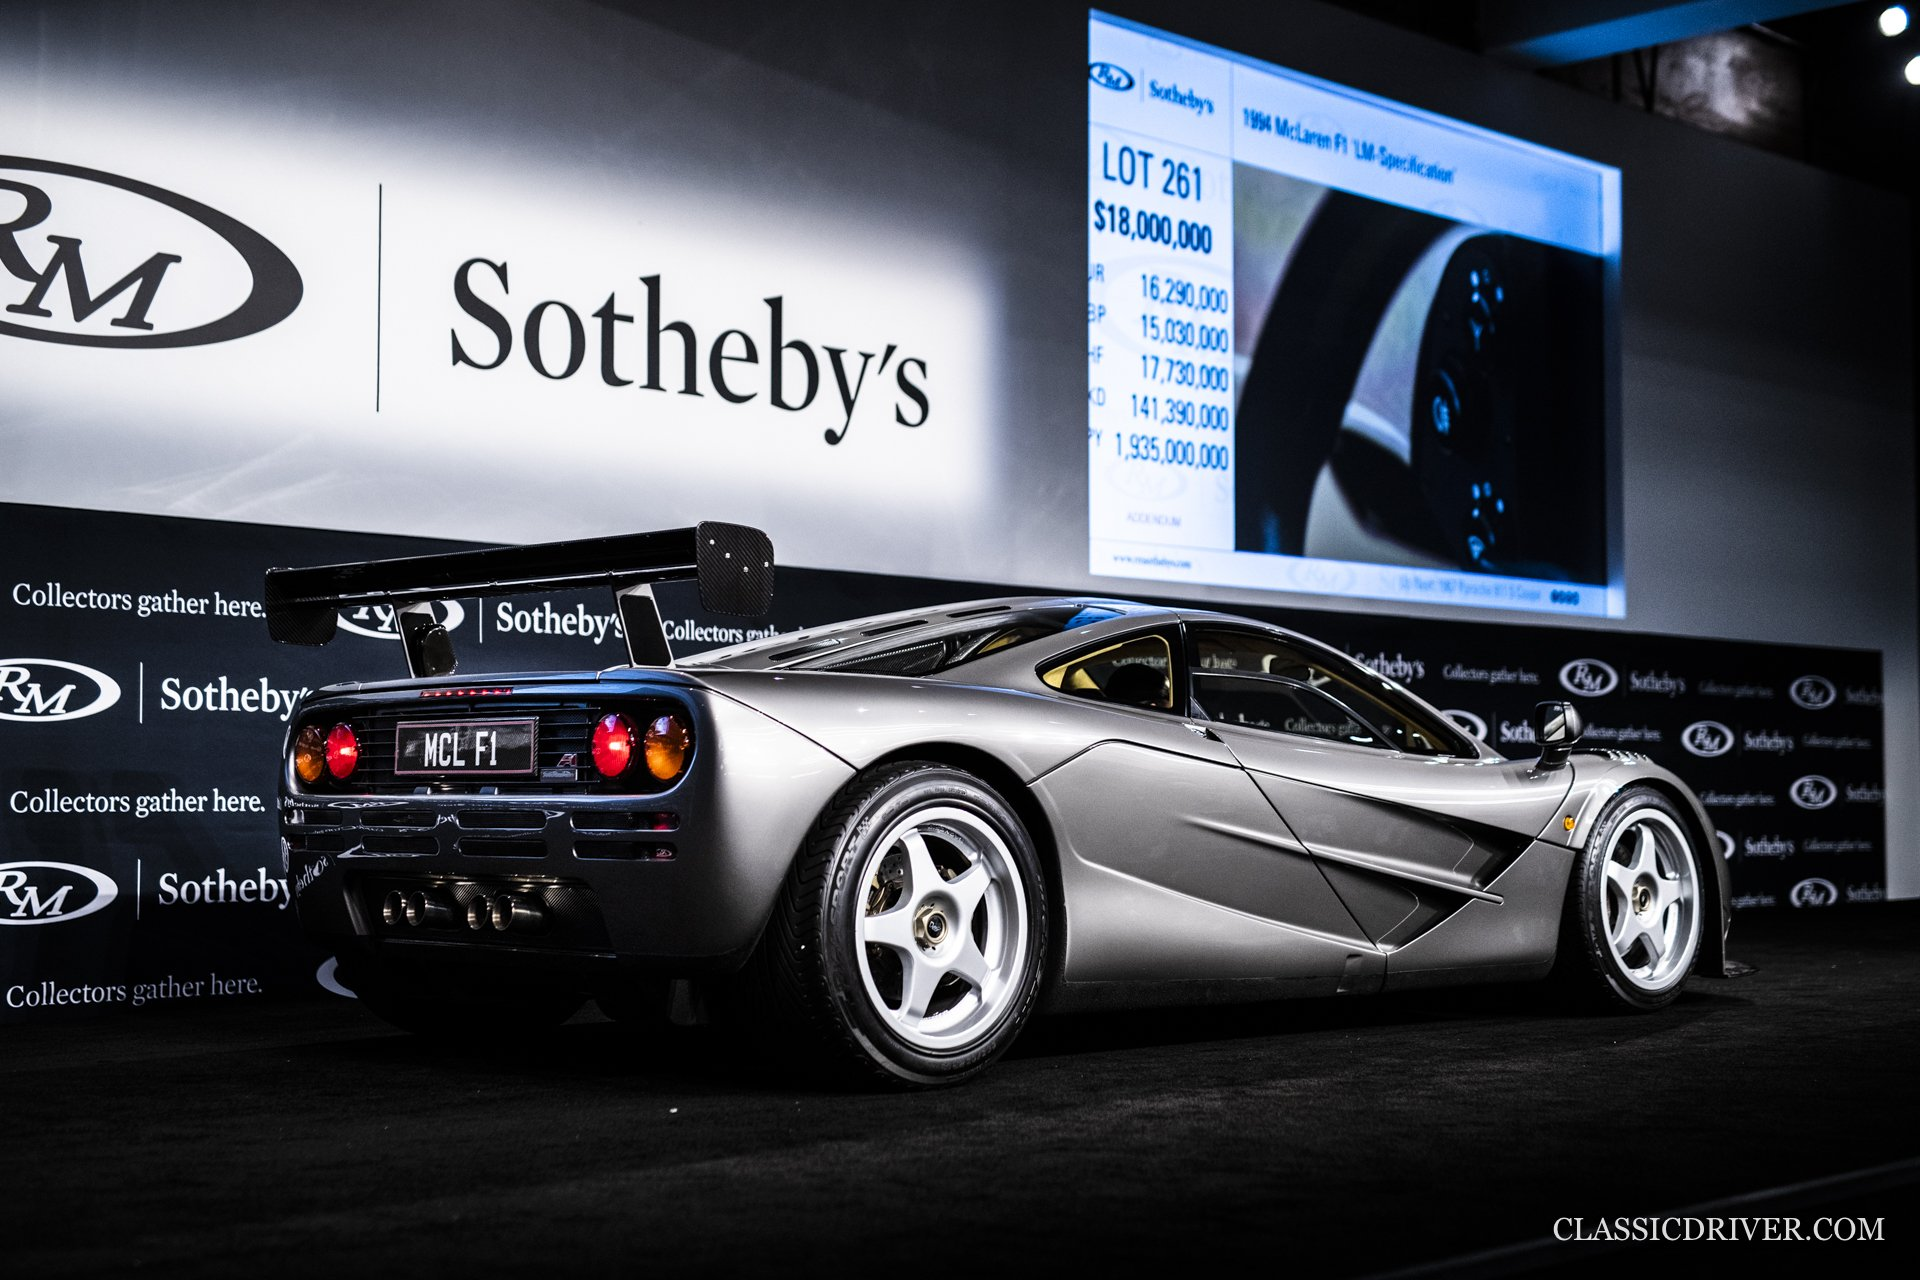 McLaren F1 'LM specification' RM Sothebys